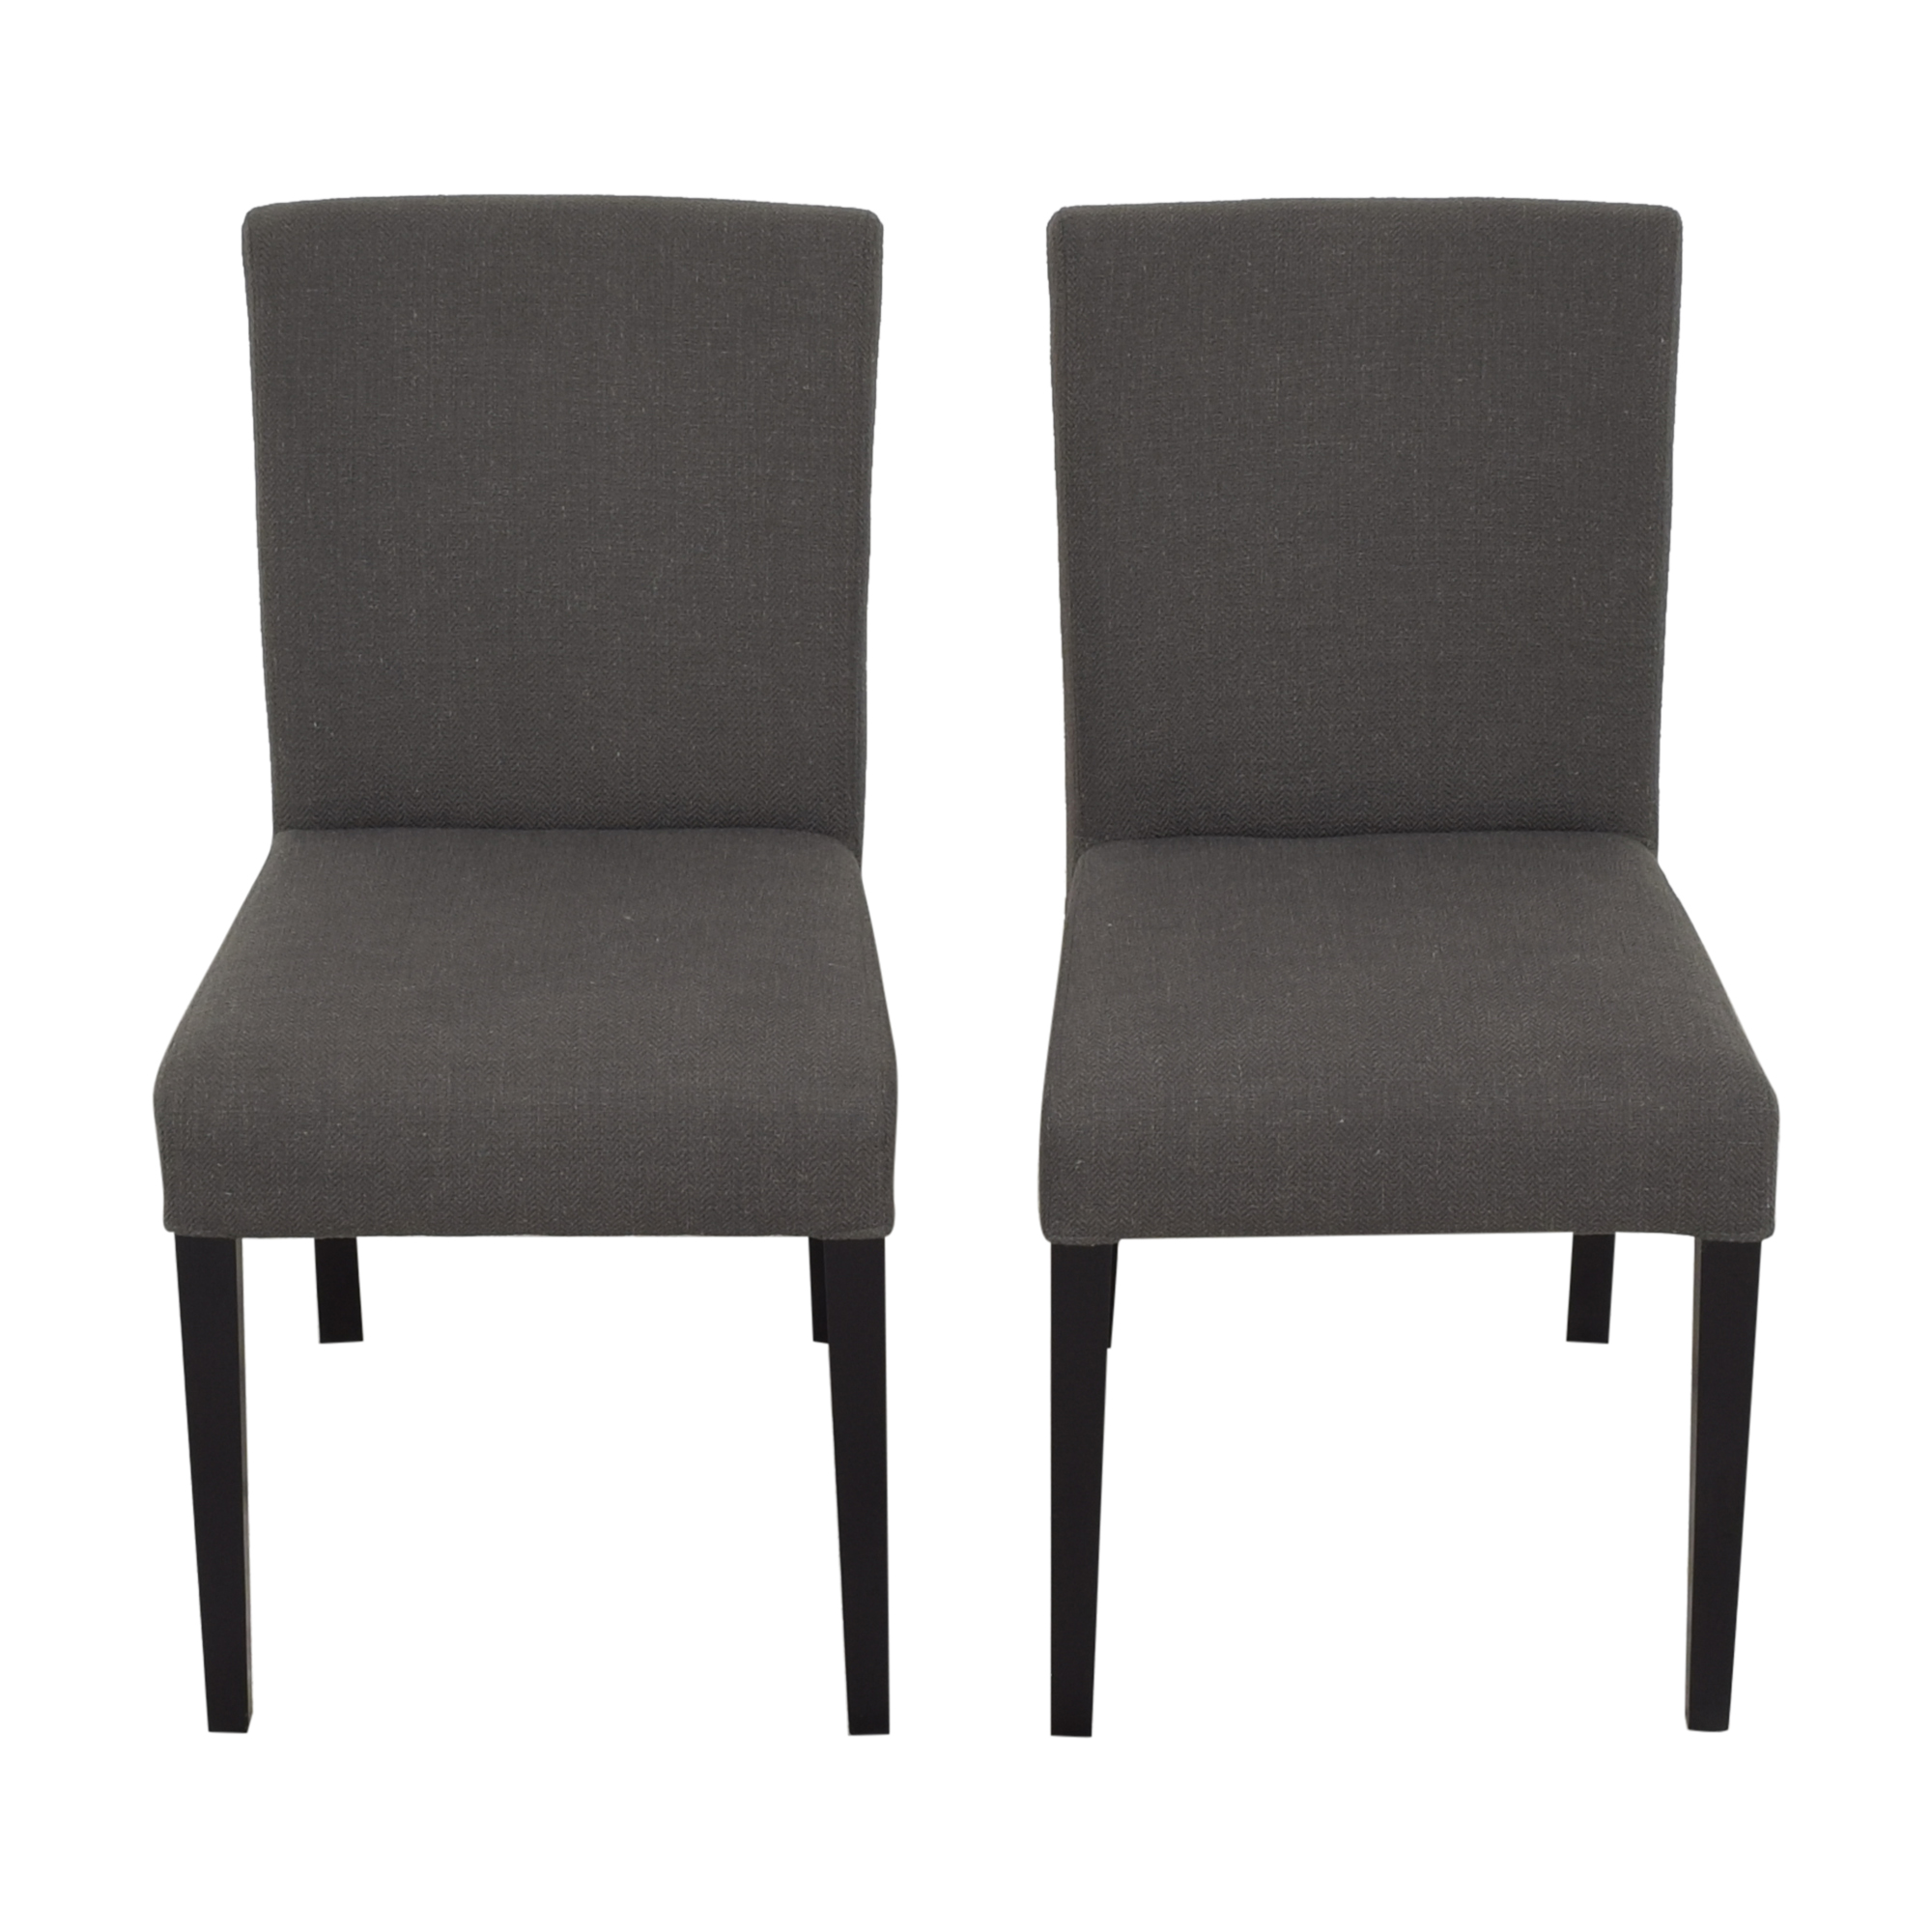 Crate & Barrel Crate & Barrel Lowe Dining Chairs pa